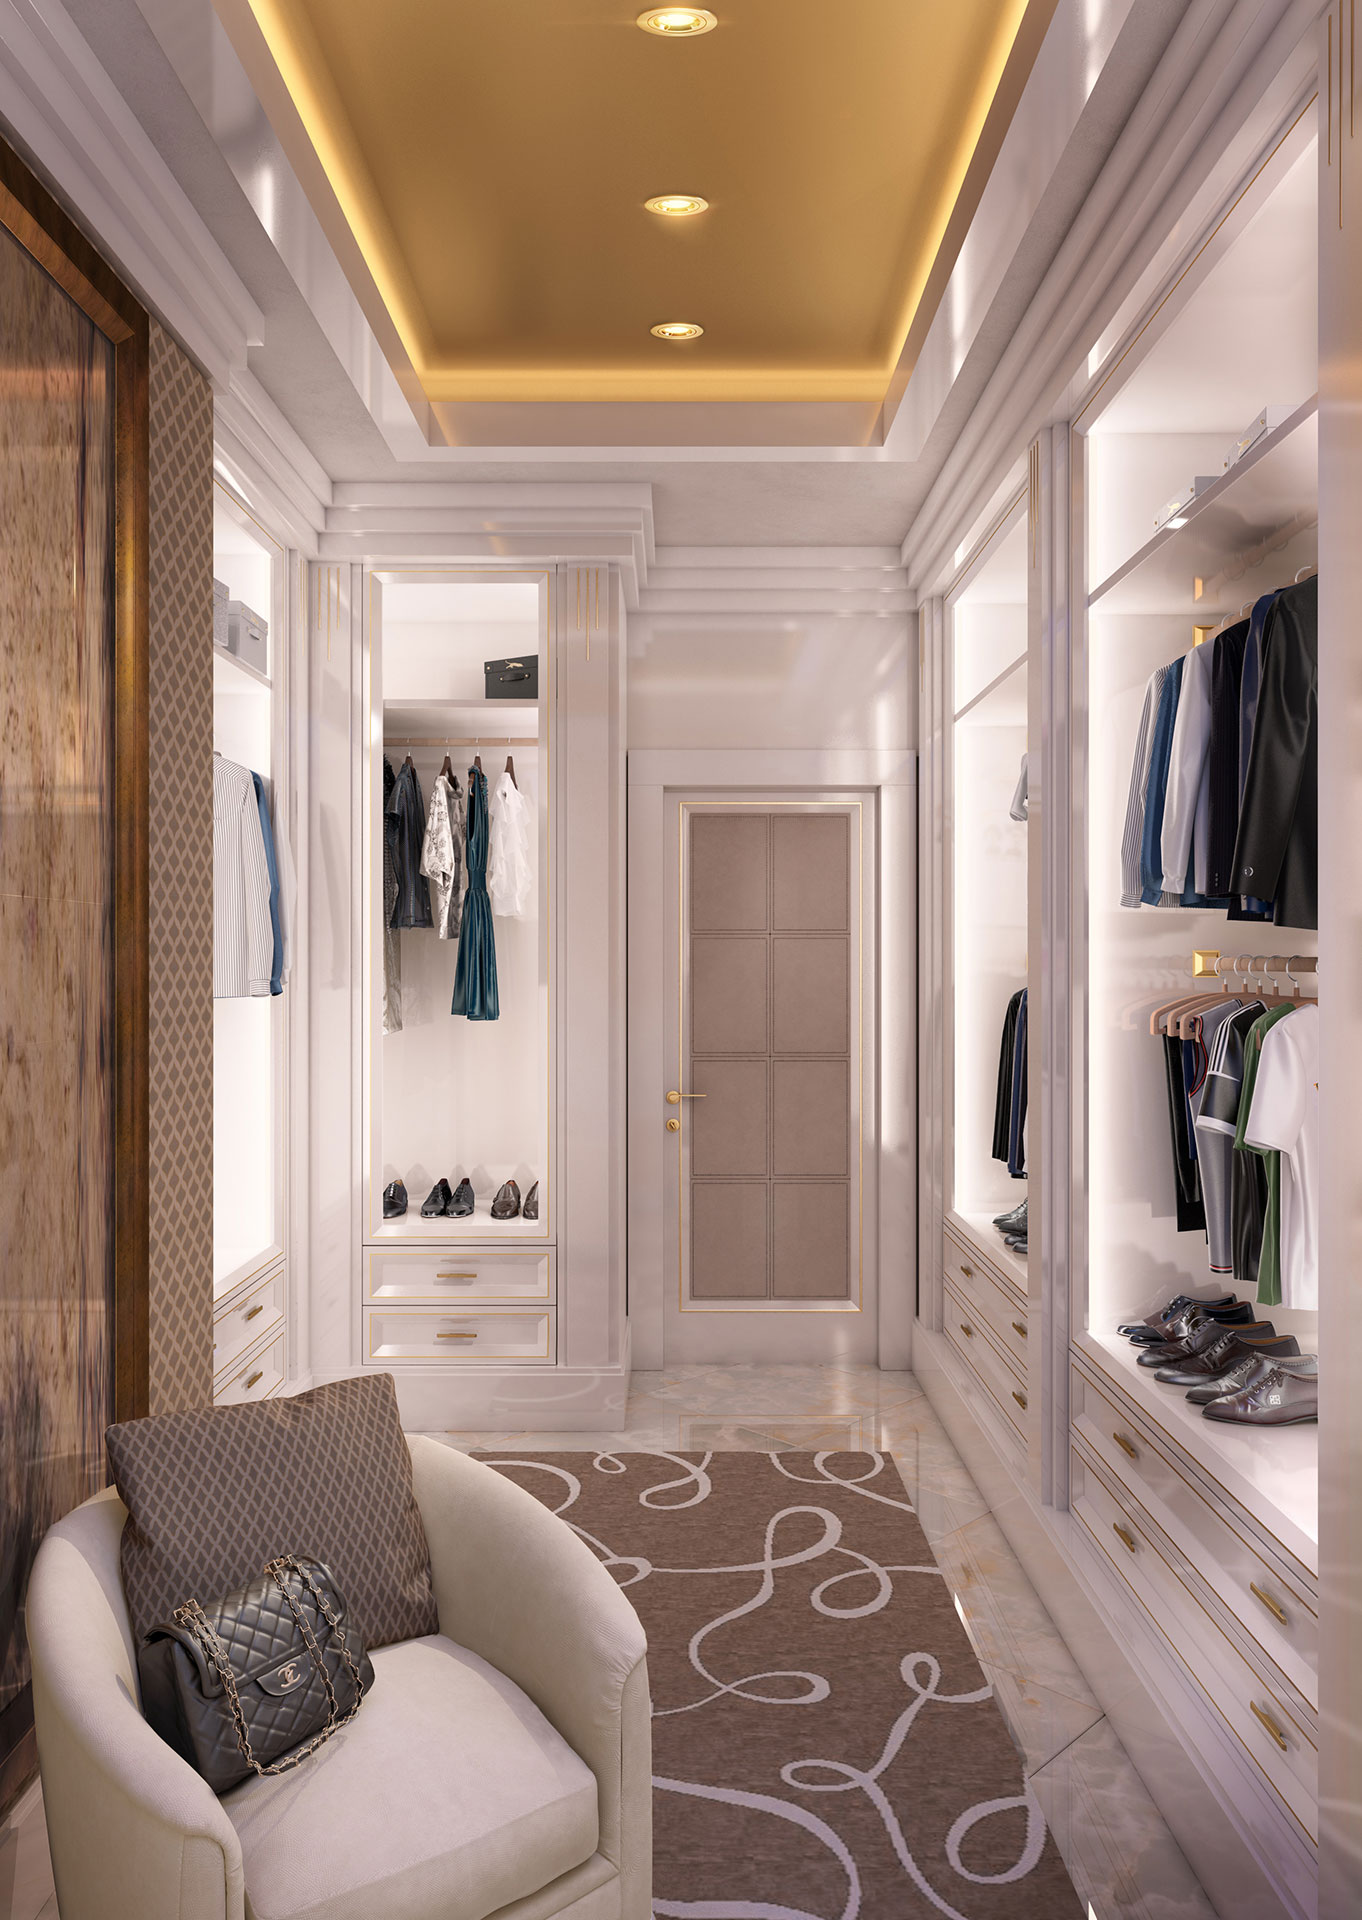 Faoma bespoke contemporary dressing room